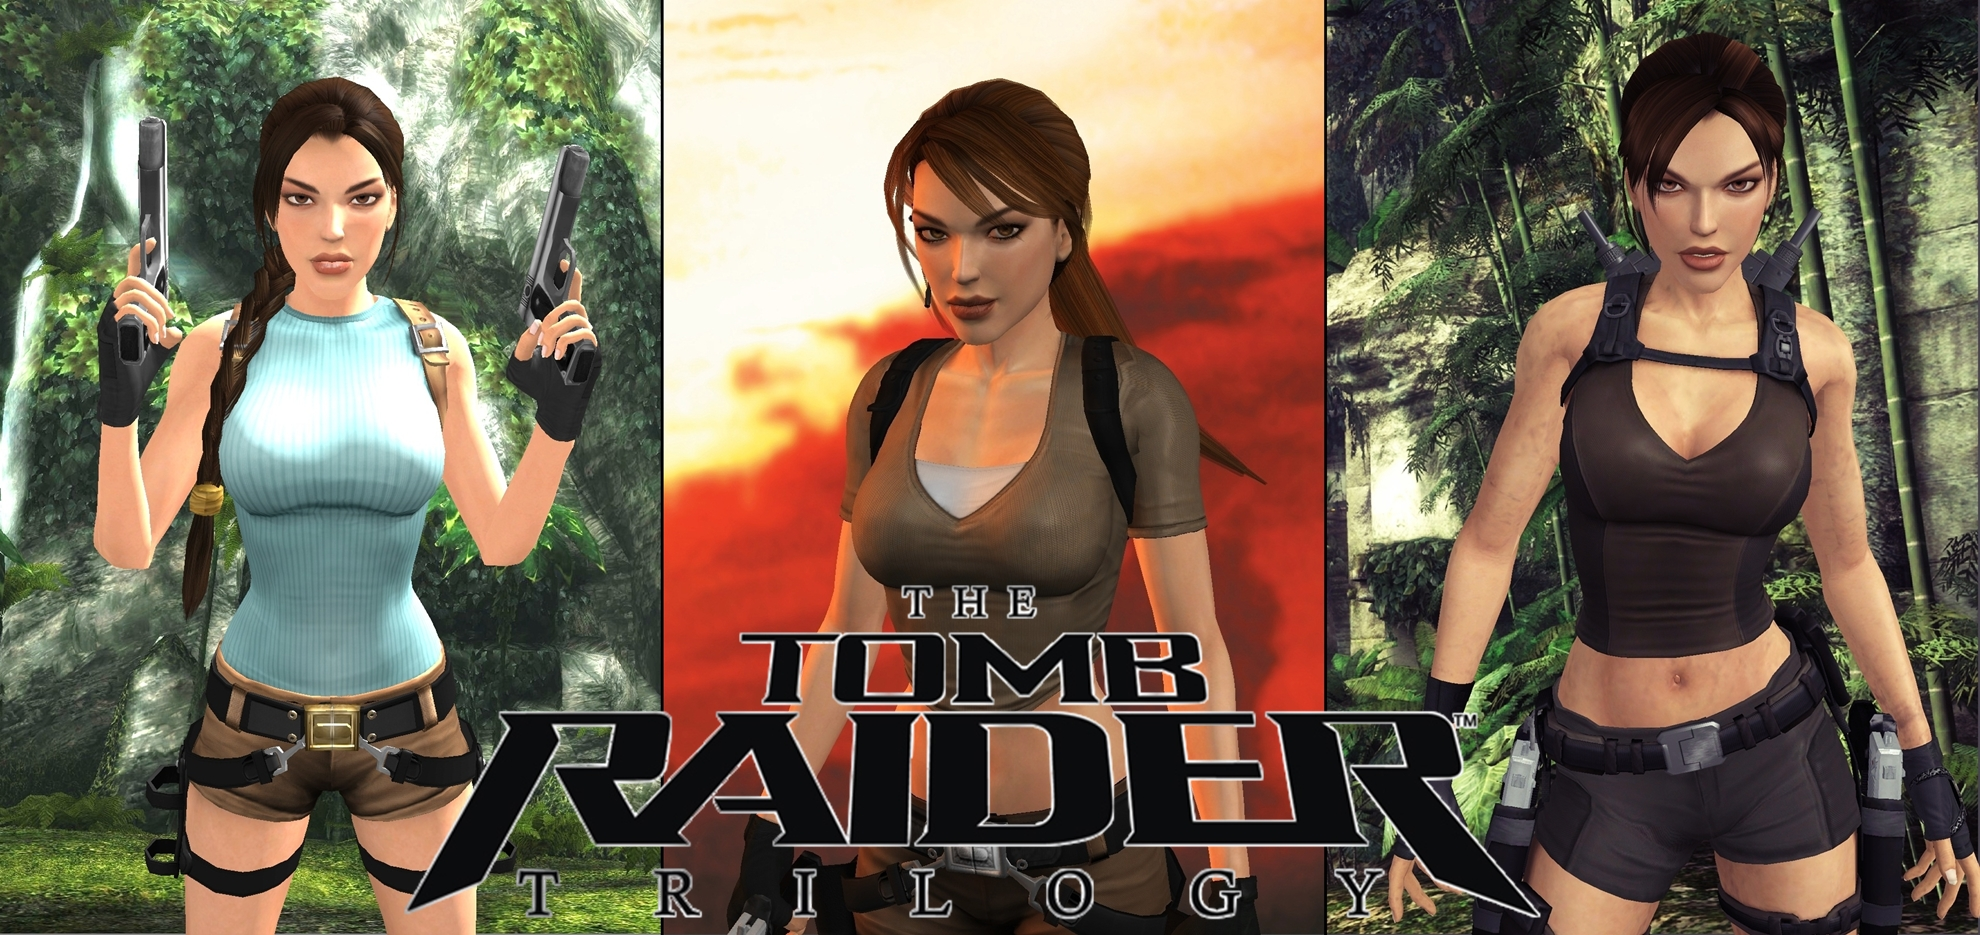 Tomb Raider Trilogy Wallpaper Video Games Blogger